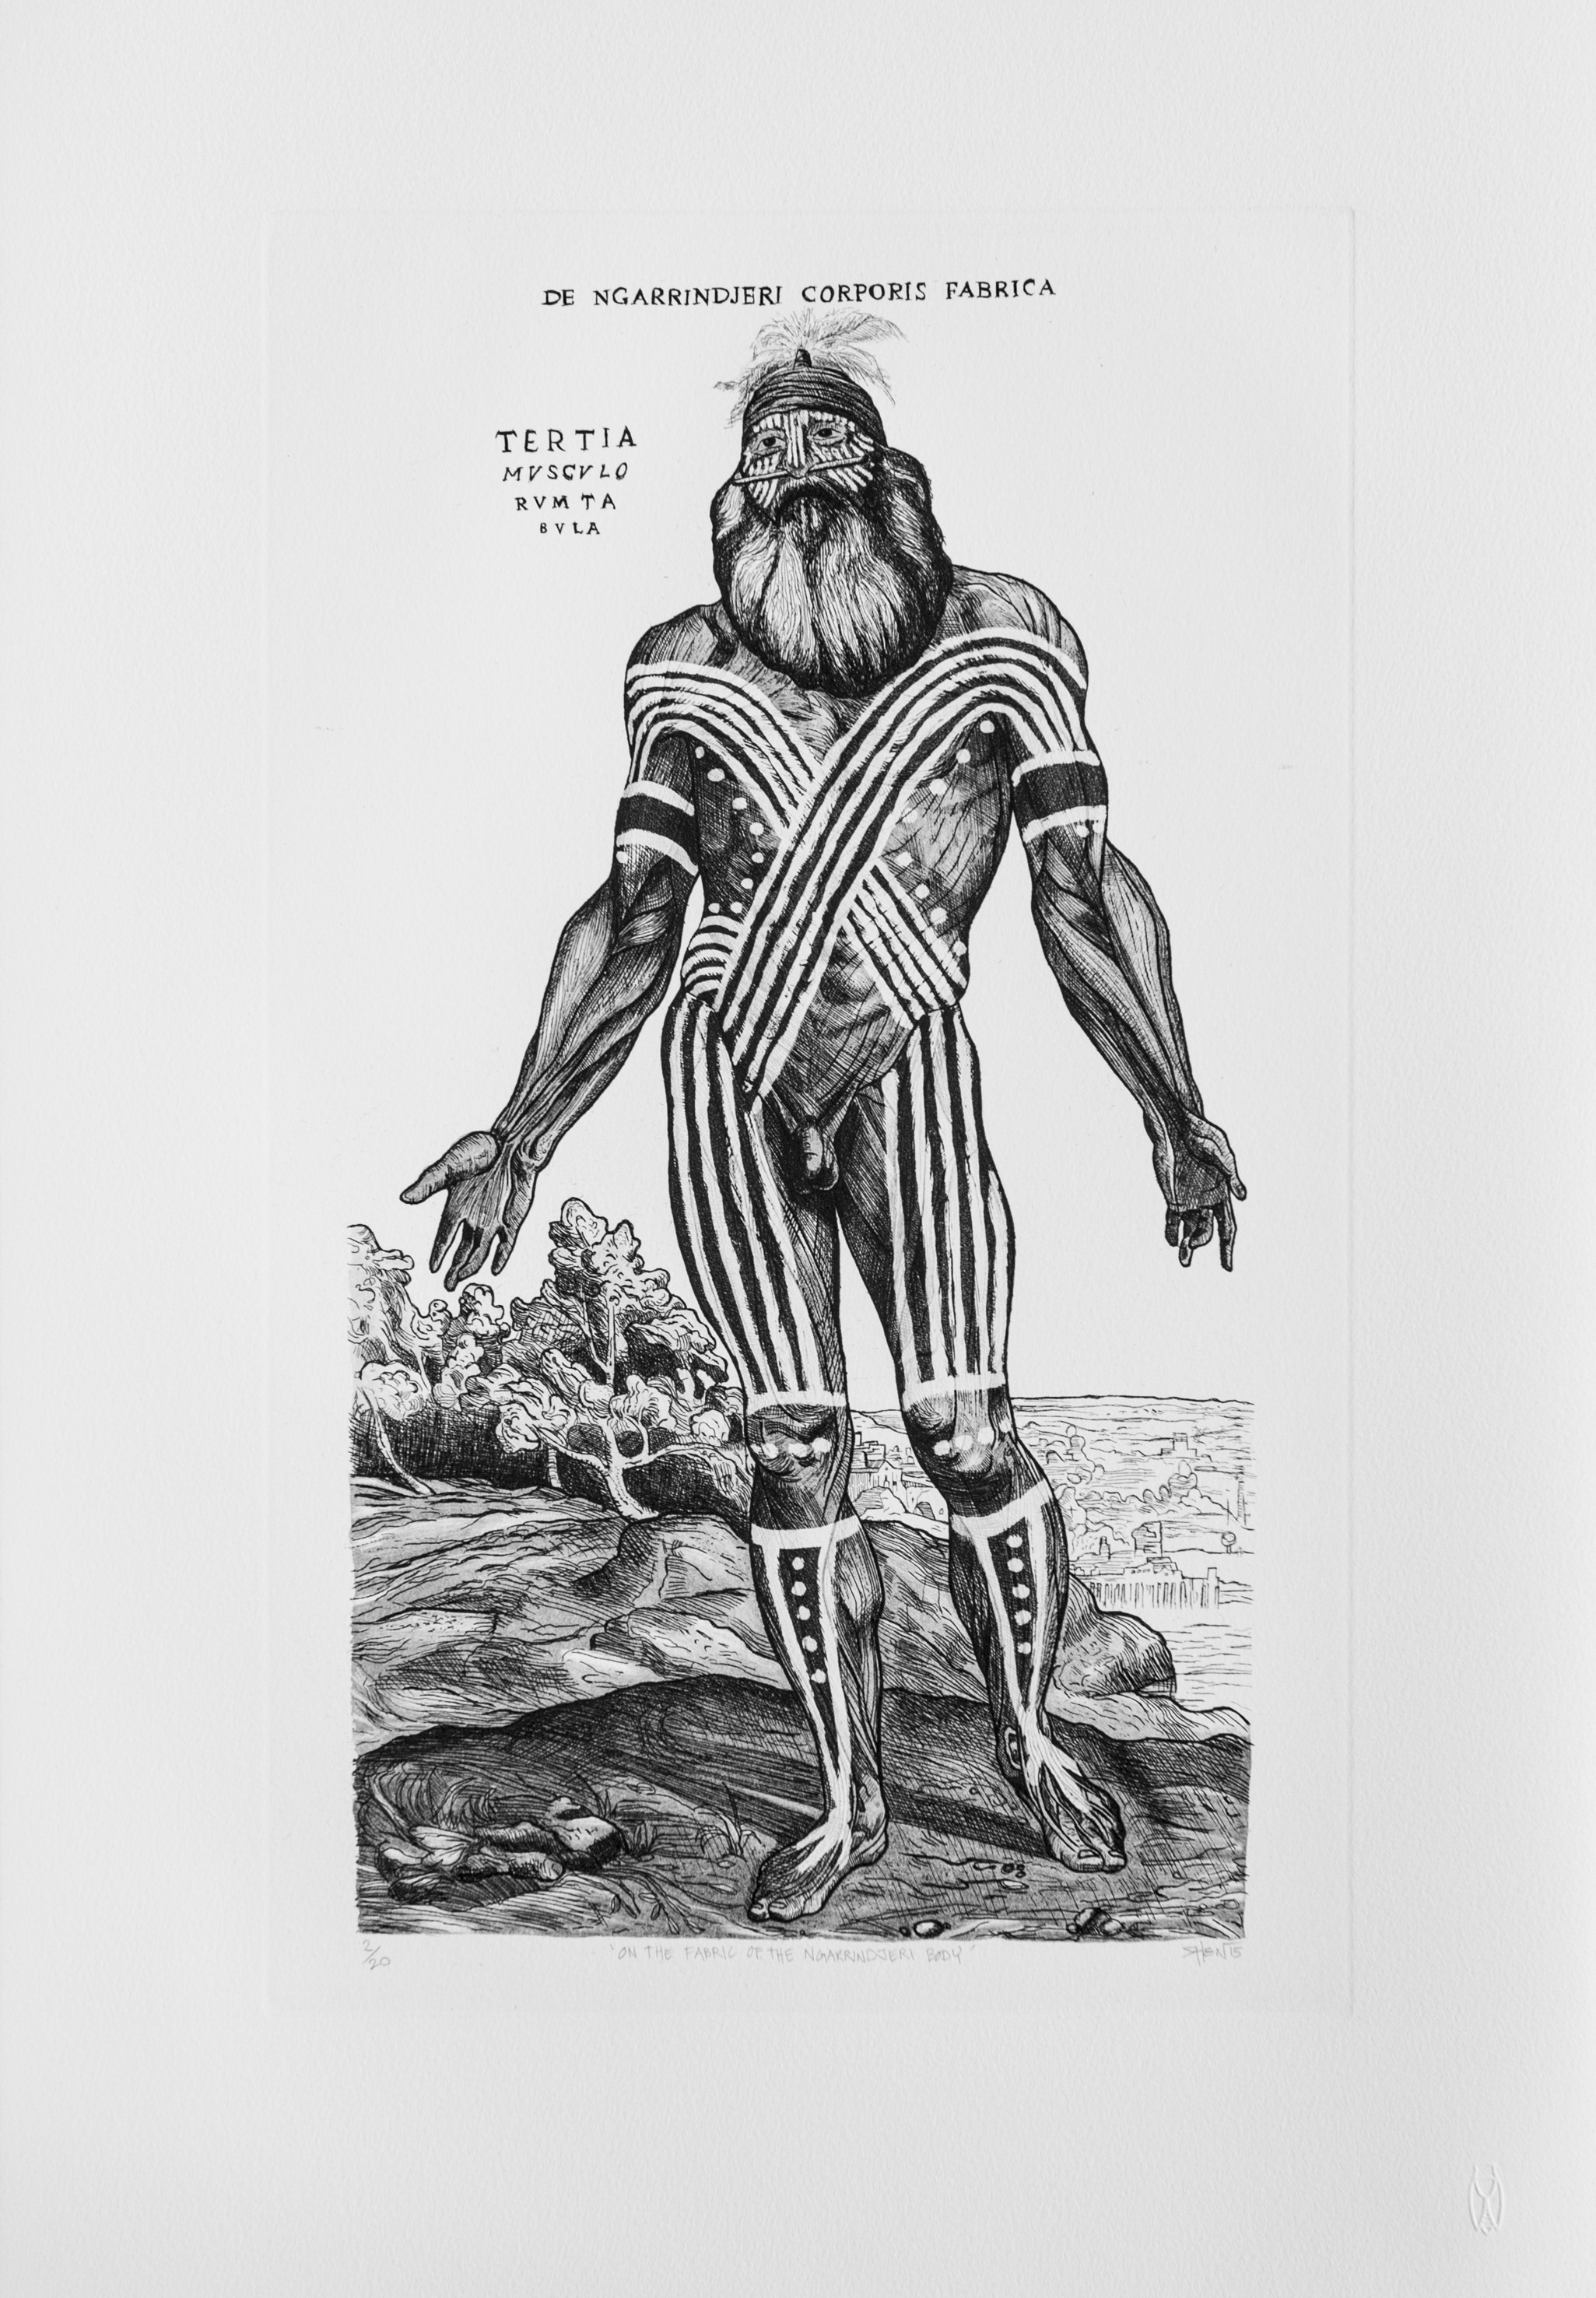 'On the fabric of the Ngarrindjeri Body', 2014 <br/>Etching, 65 x 46 cm, Edition of 20